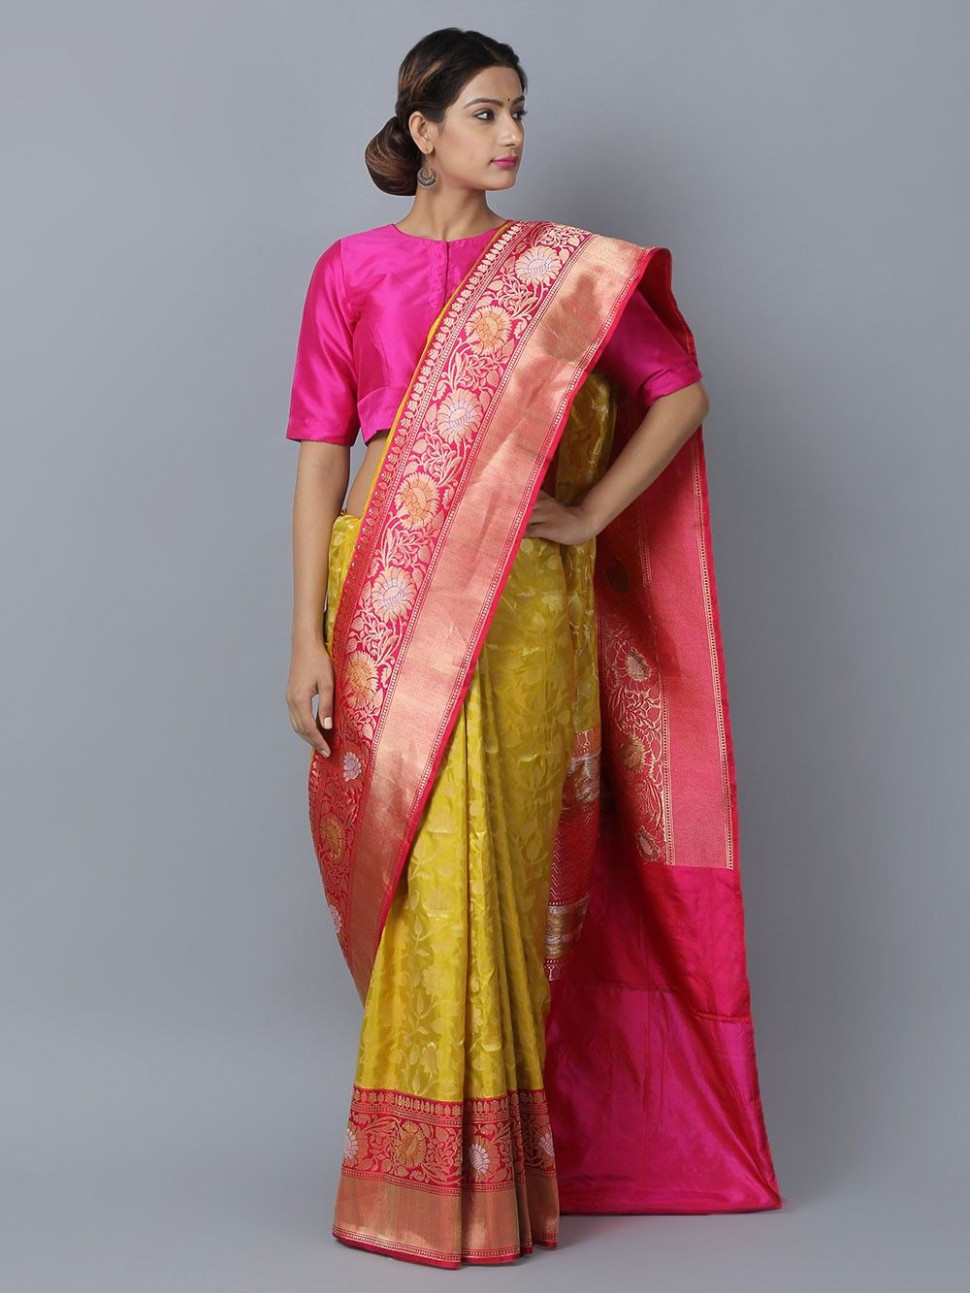 Buy Yellow Pink Silk Handwoven Banarasi Saree online at